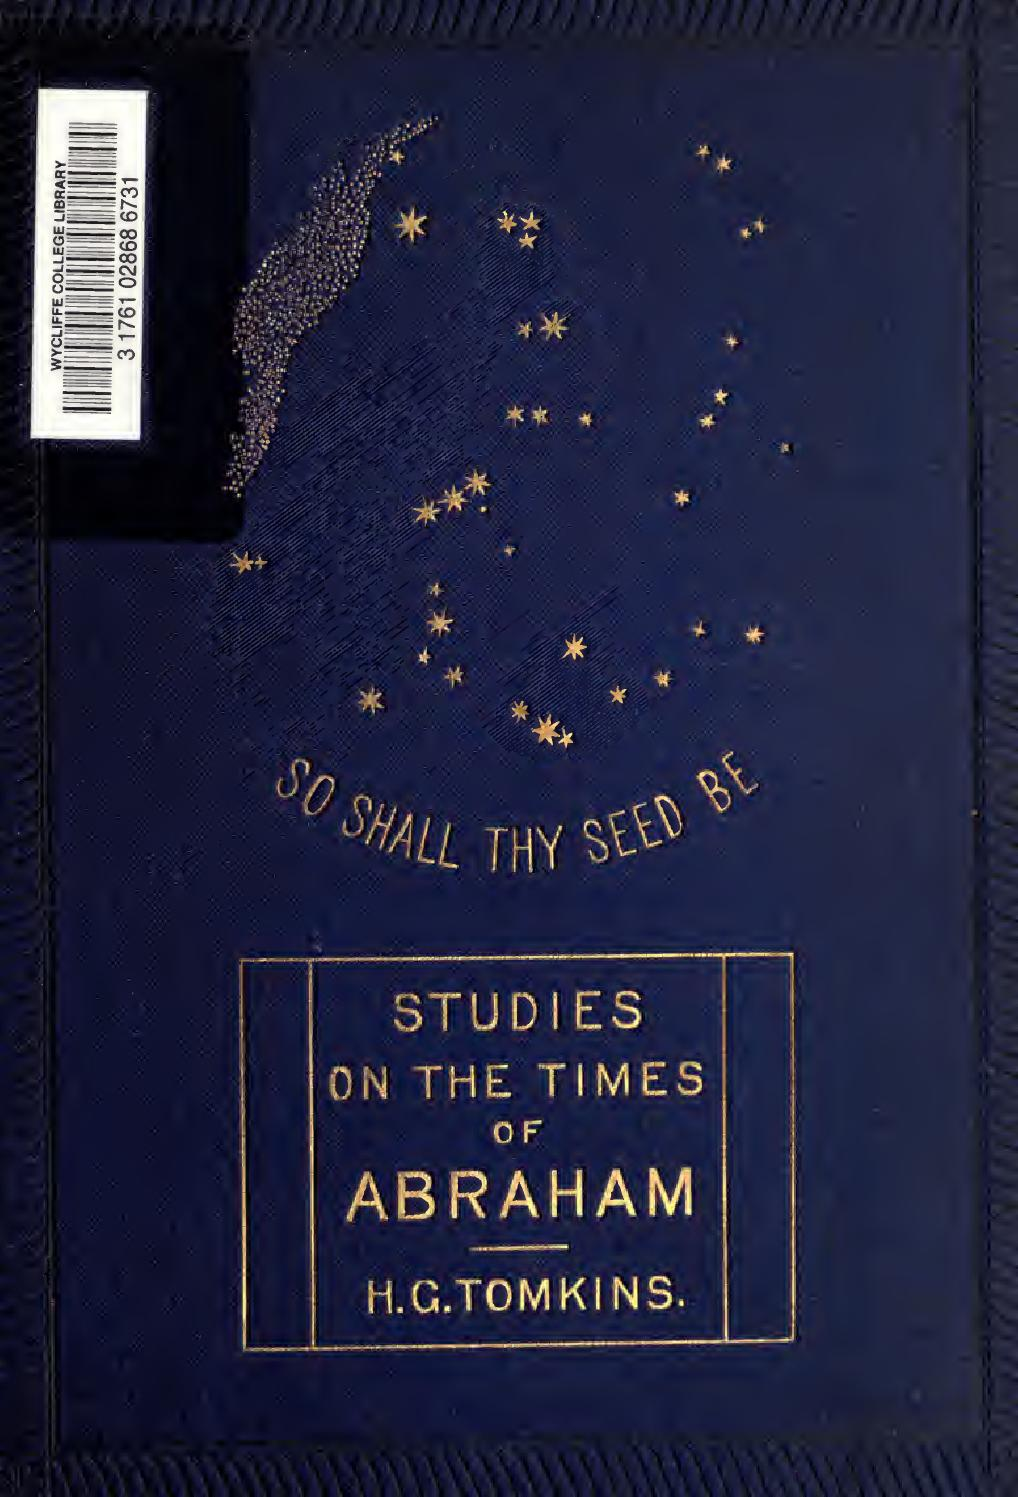 Studies on the times of Abraham Henry George Tomkins by lale